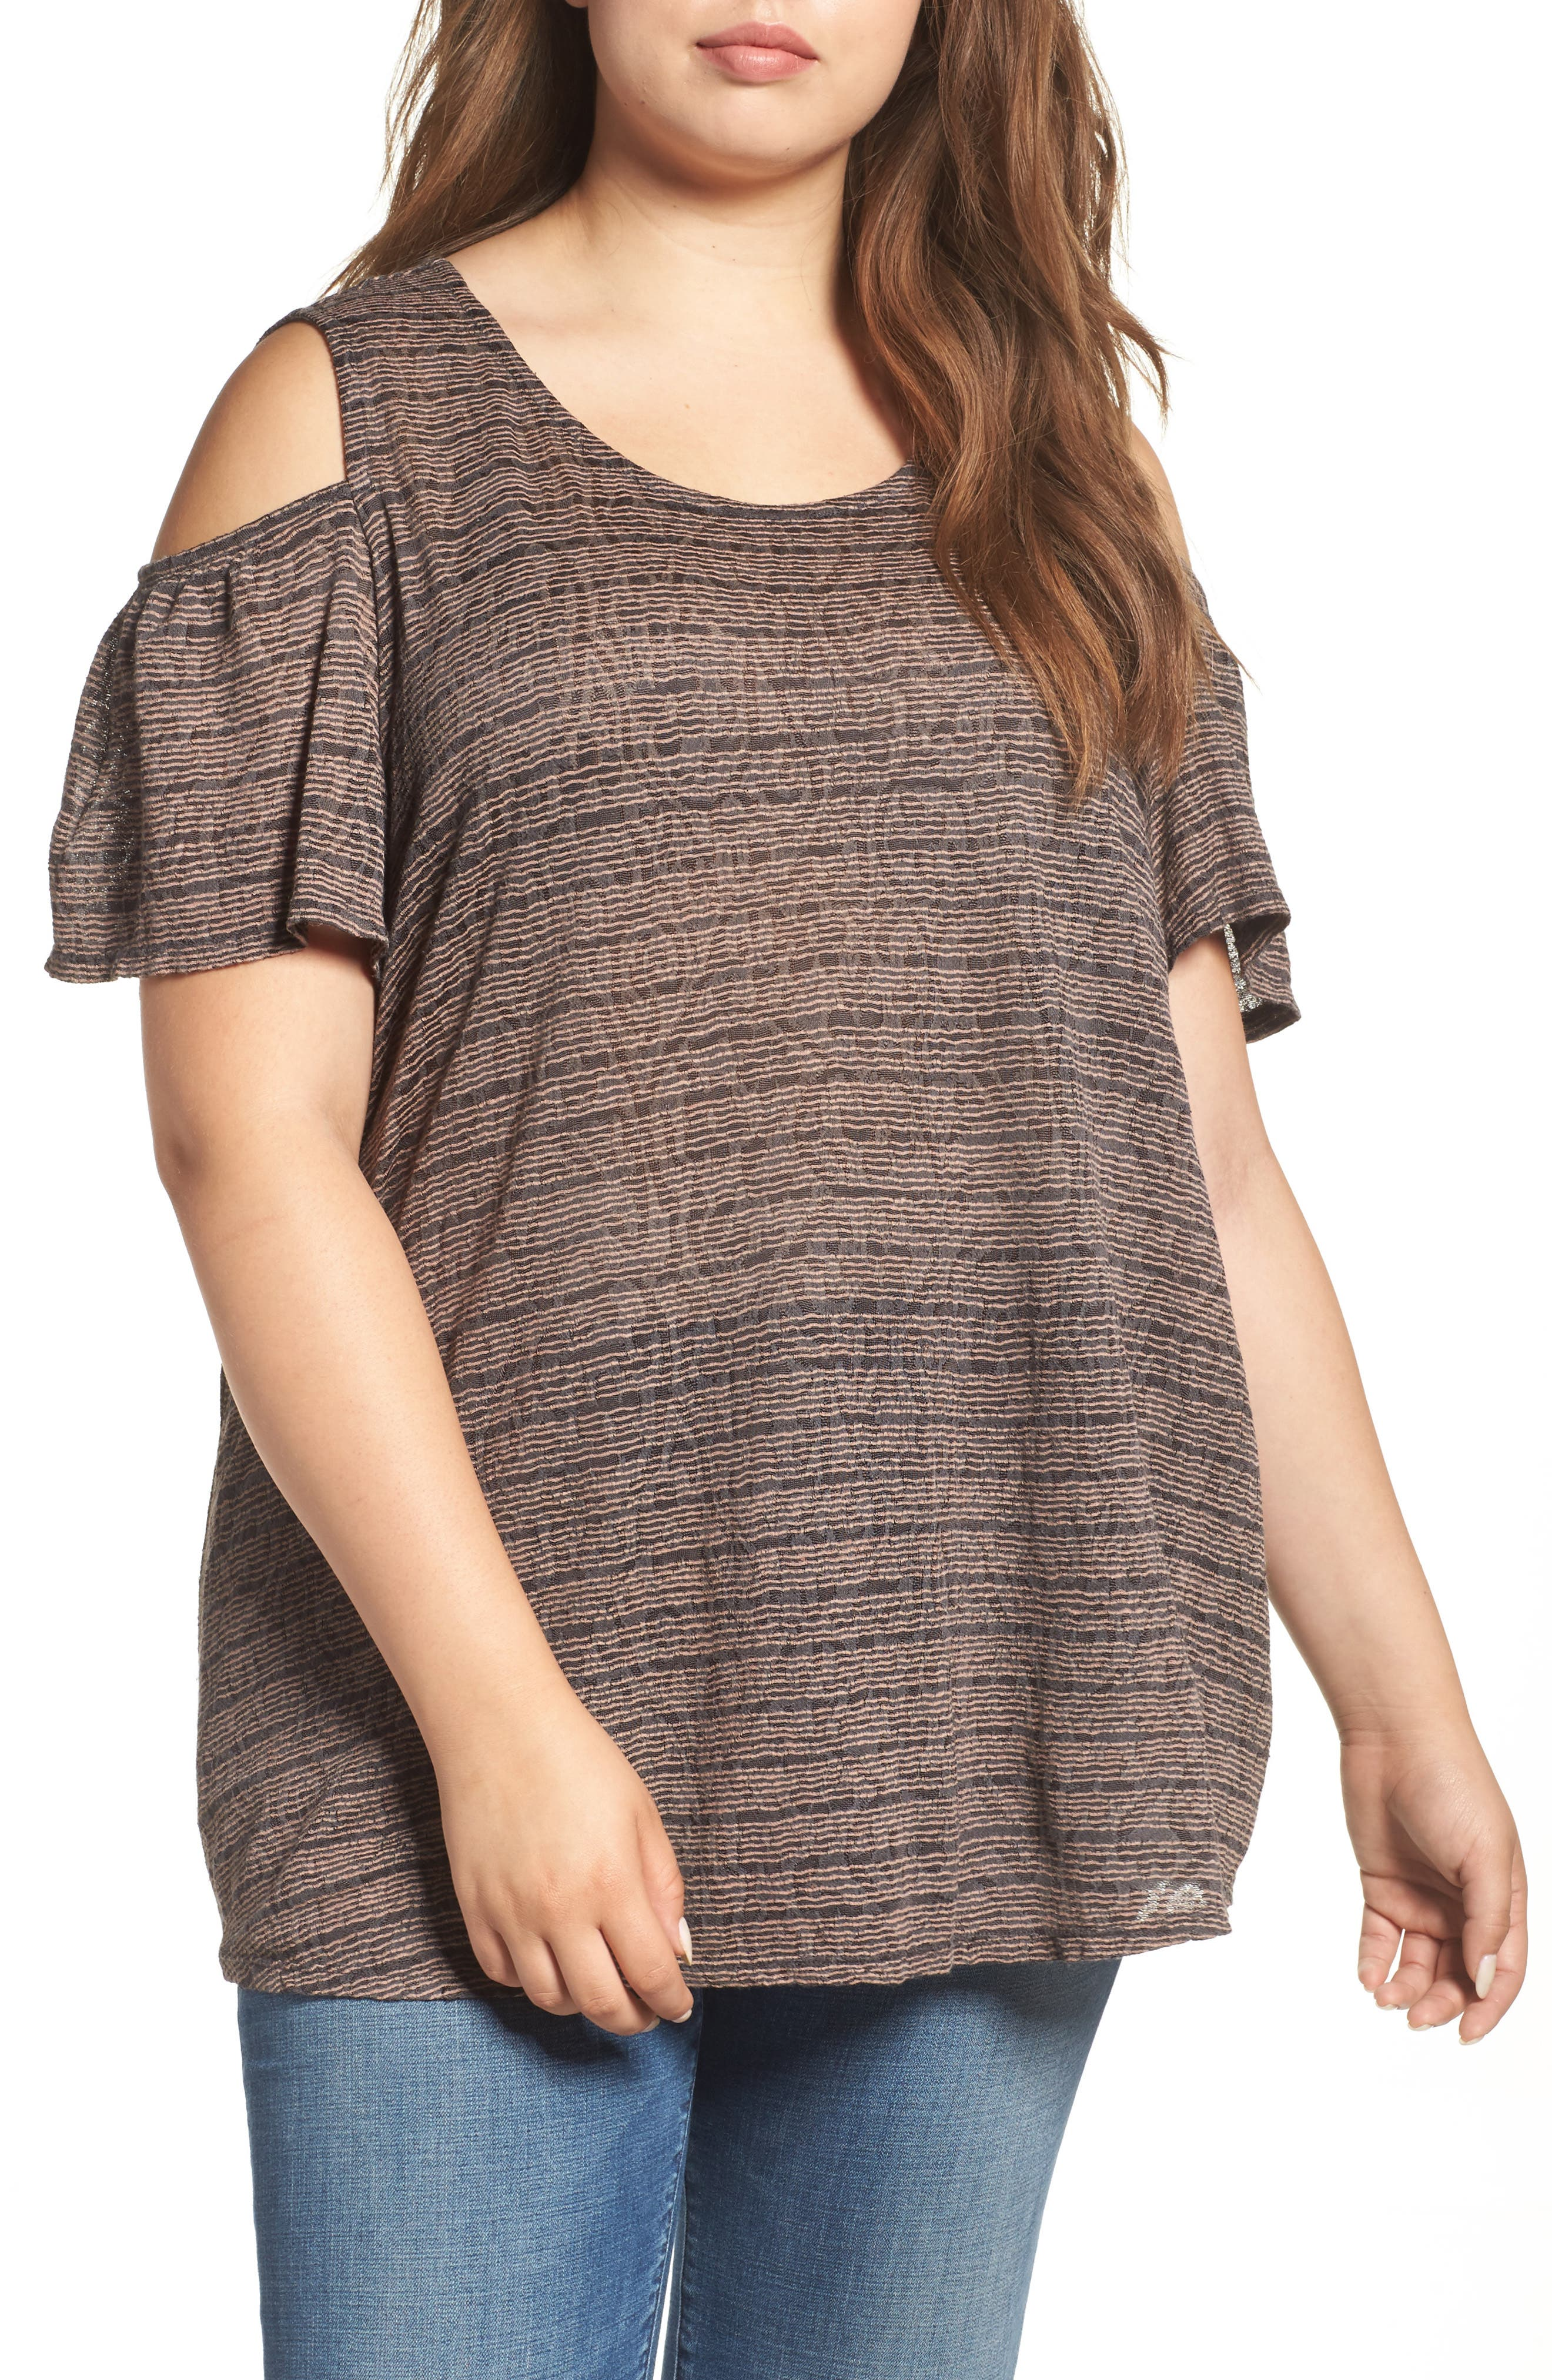 Alternate Image 1 Selected - Lucky Brand Stripe Cold Shoulder Top (Plus Size)